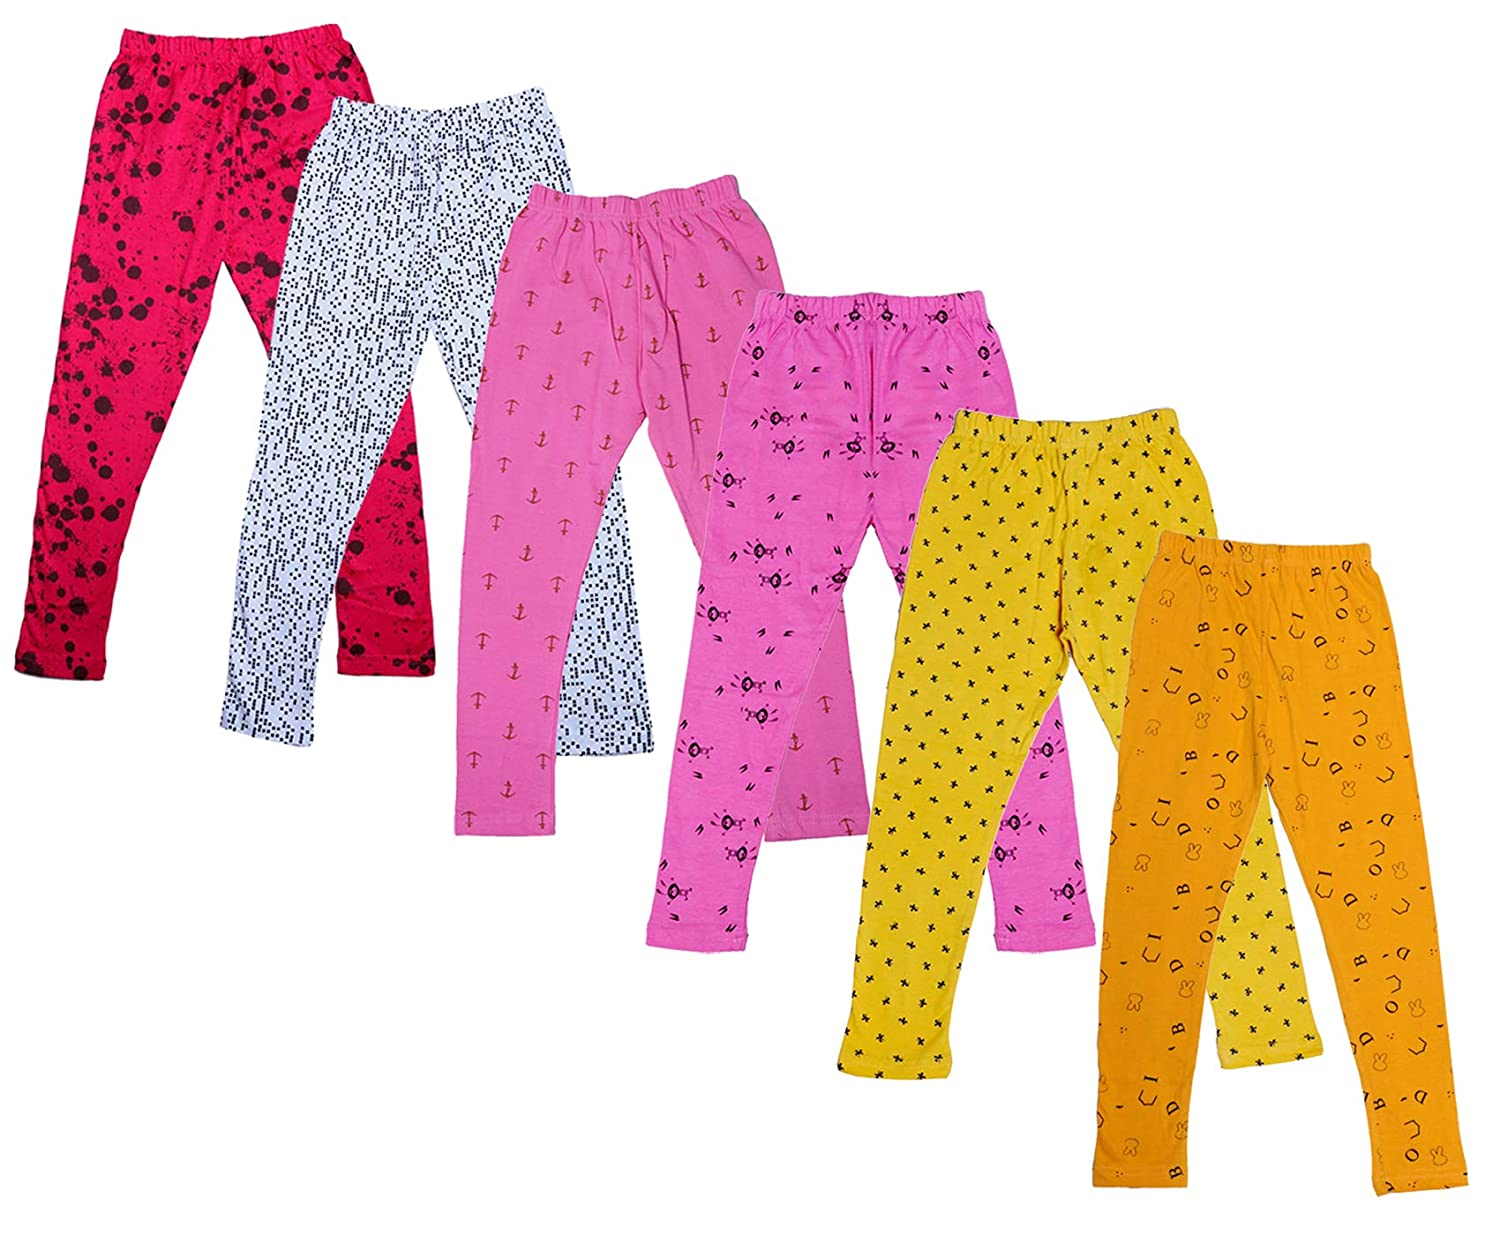 Indistar Little Girls Super Soft Cotton Leggings Combo Pack Of 3